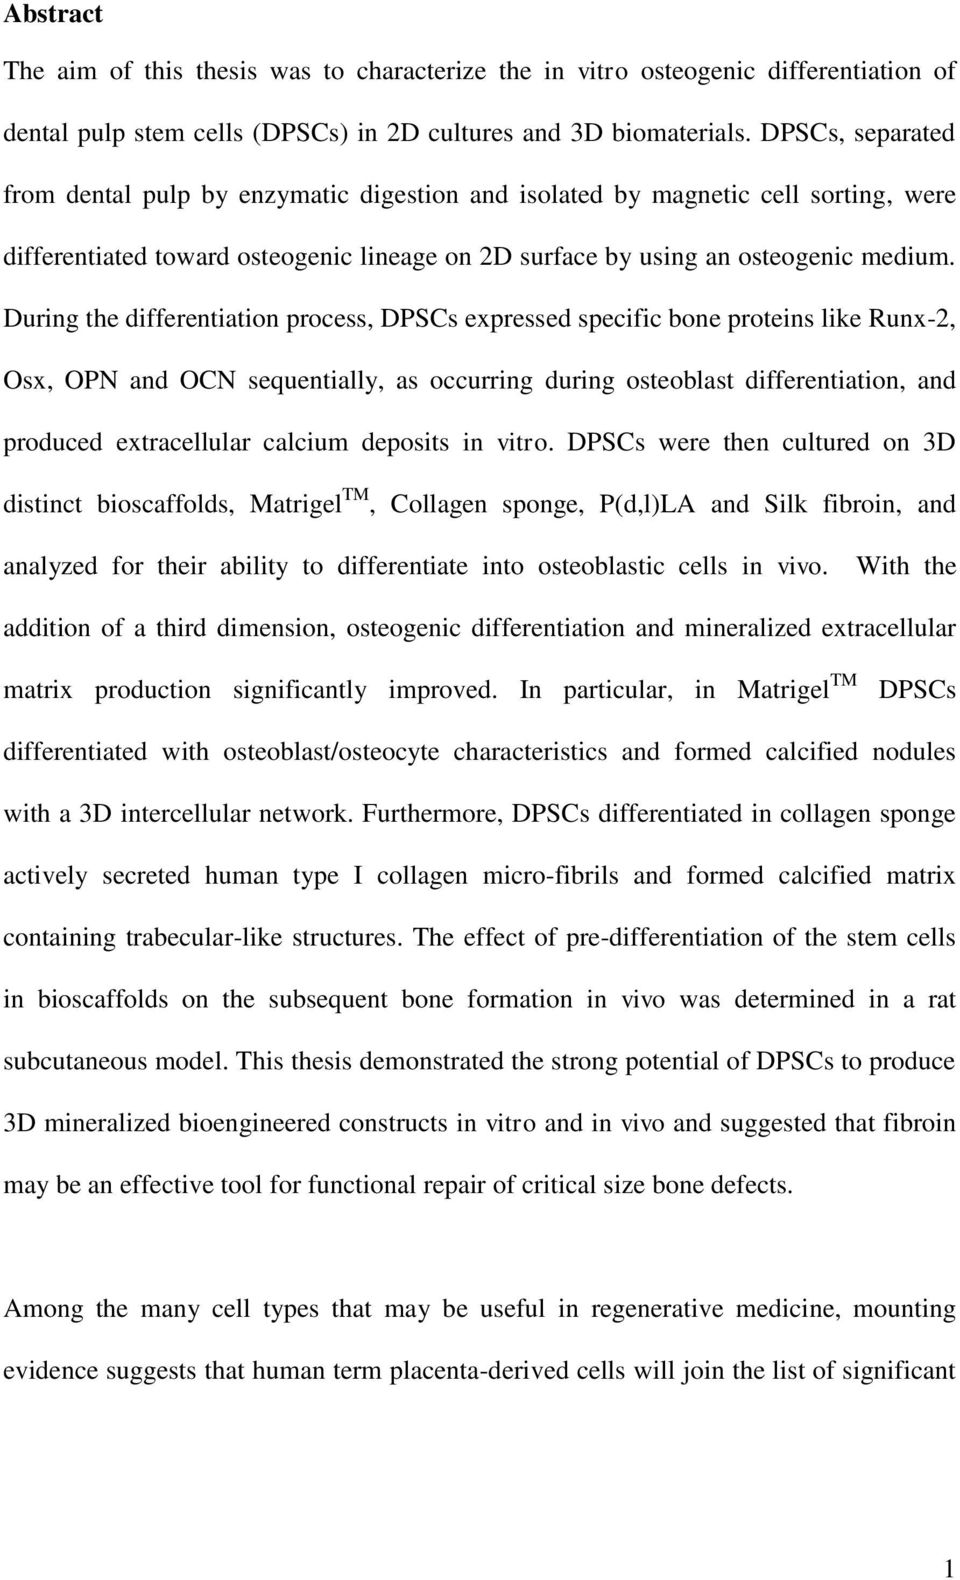 During the differentiation process, DPSCs expressed specific bone proteins like Runx-2, Osx, OPN and OCN sequentially, as occurring during osteoblast differentiation, and produced extracellular